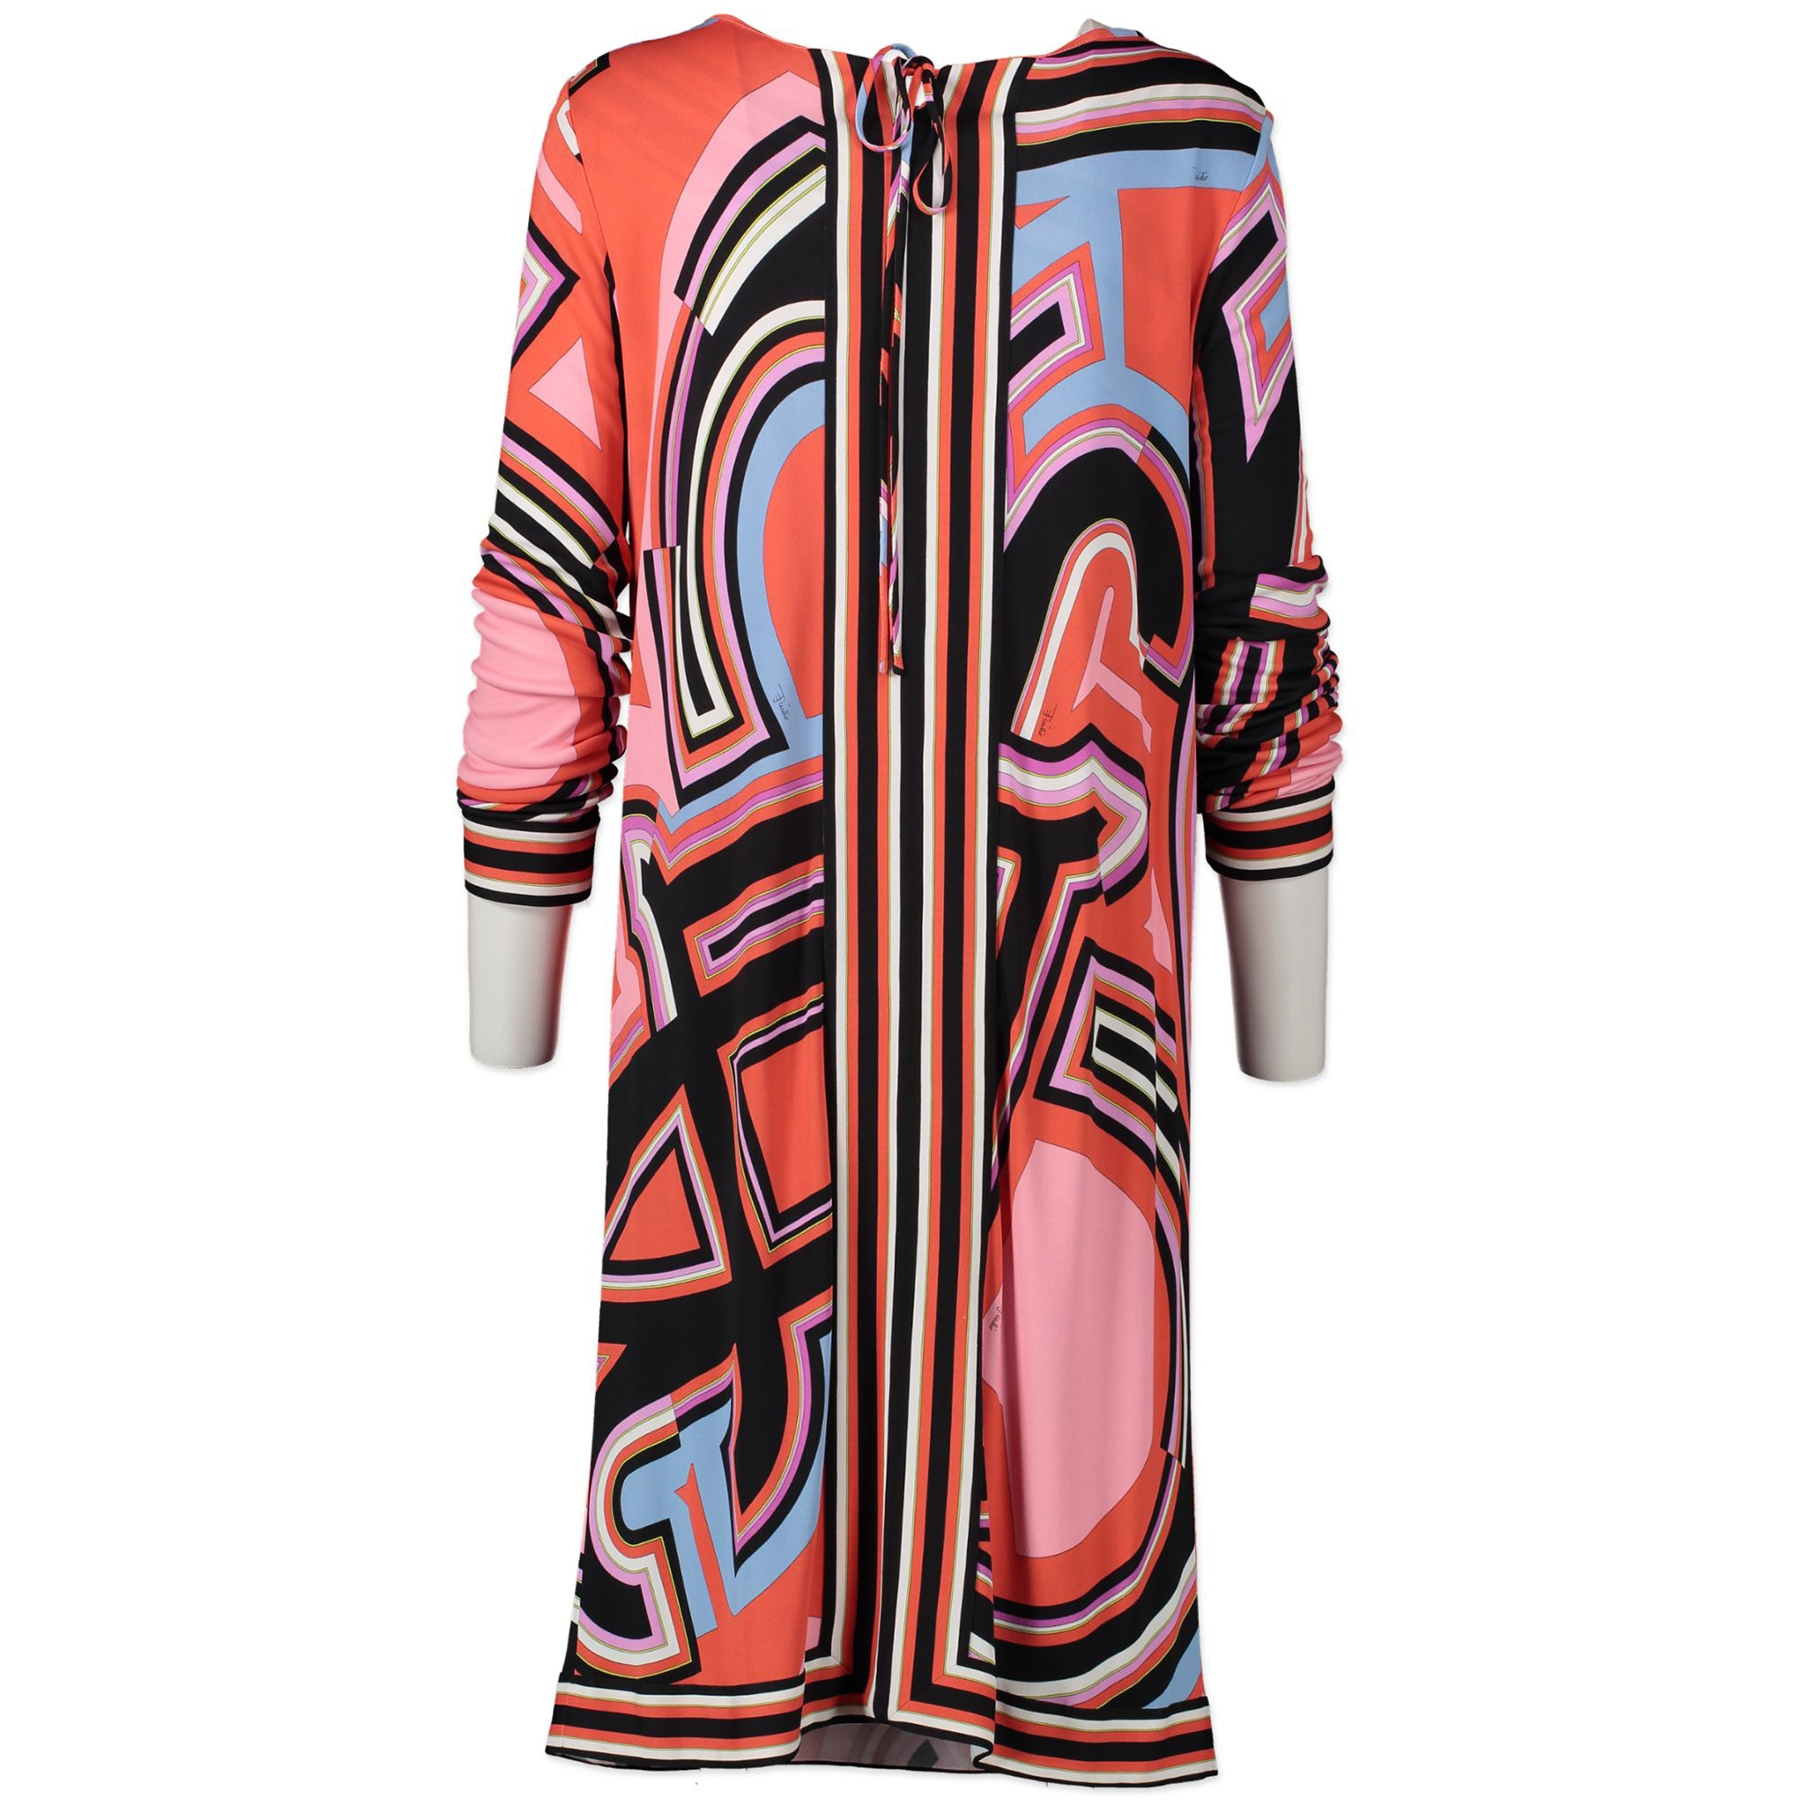 Authentic secondhand Emilio Pucci Red Pattern Print Dress - Size 42 designer clothing designer brands fashion luxury vintage webshop